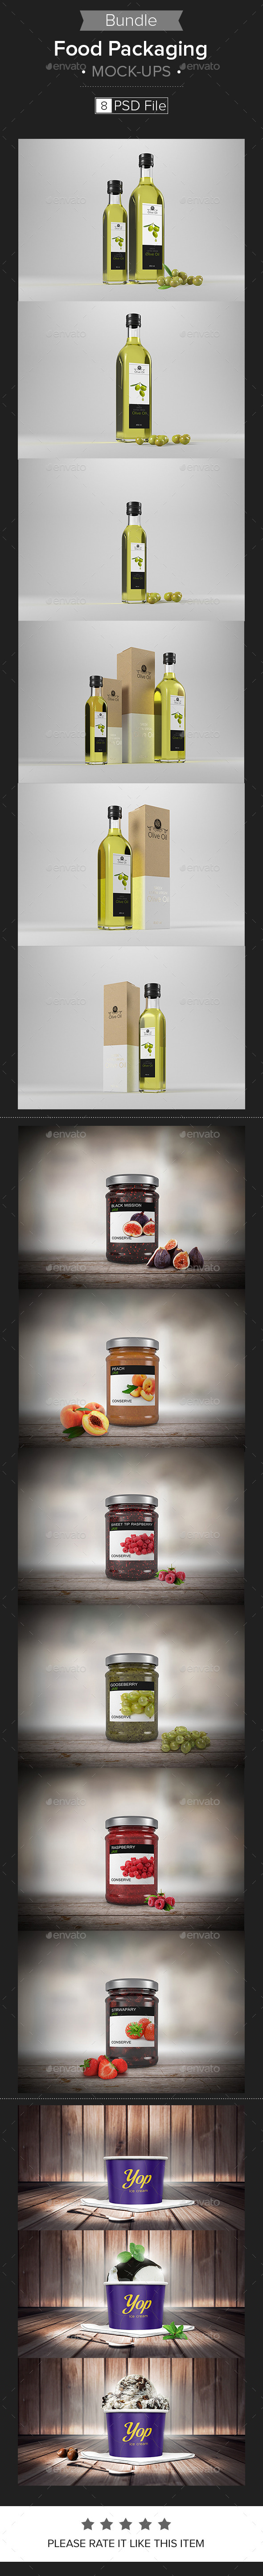 Food Packaging Mock-up Bundle